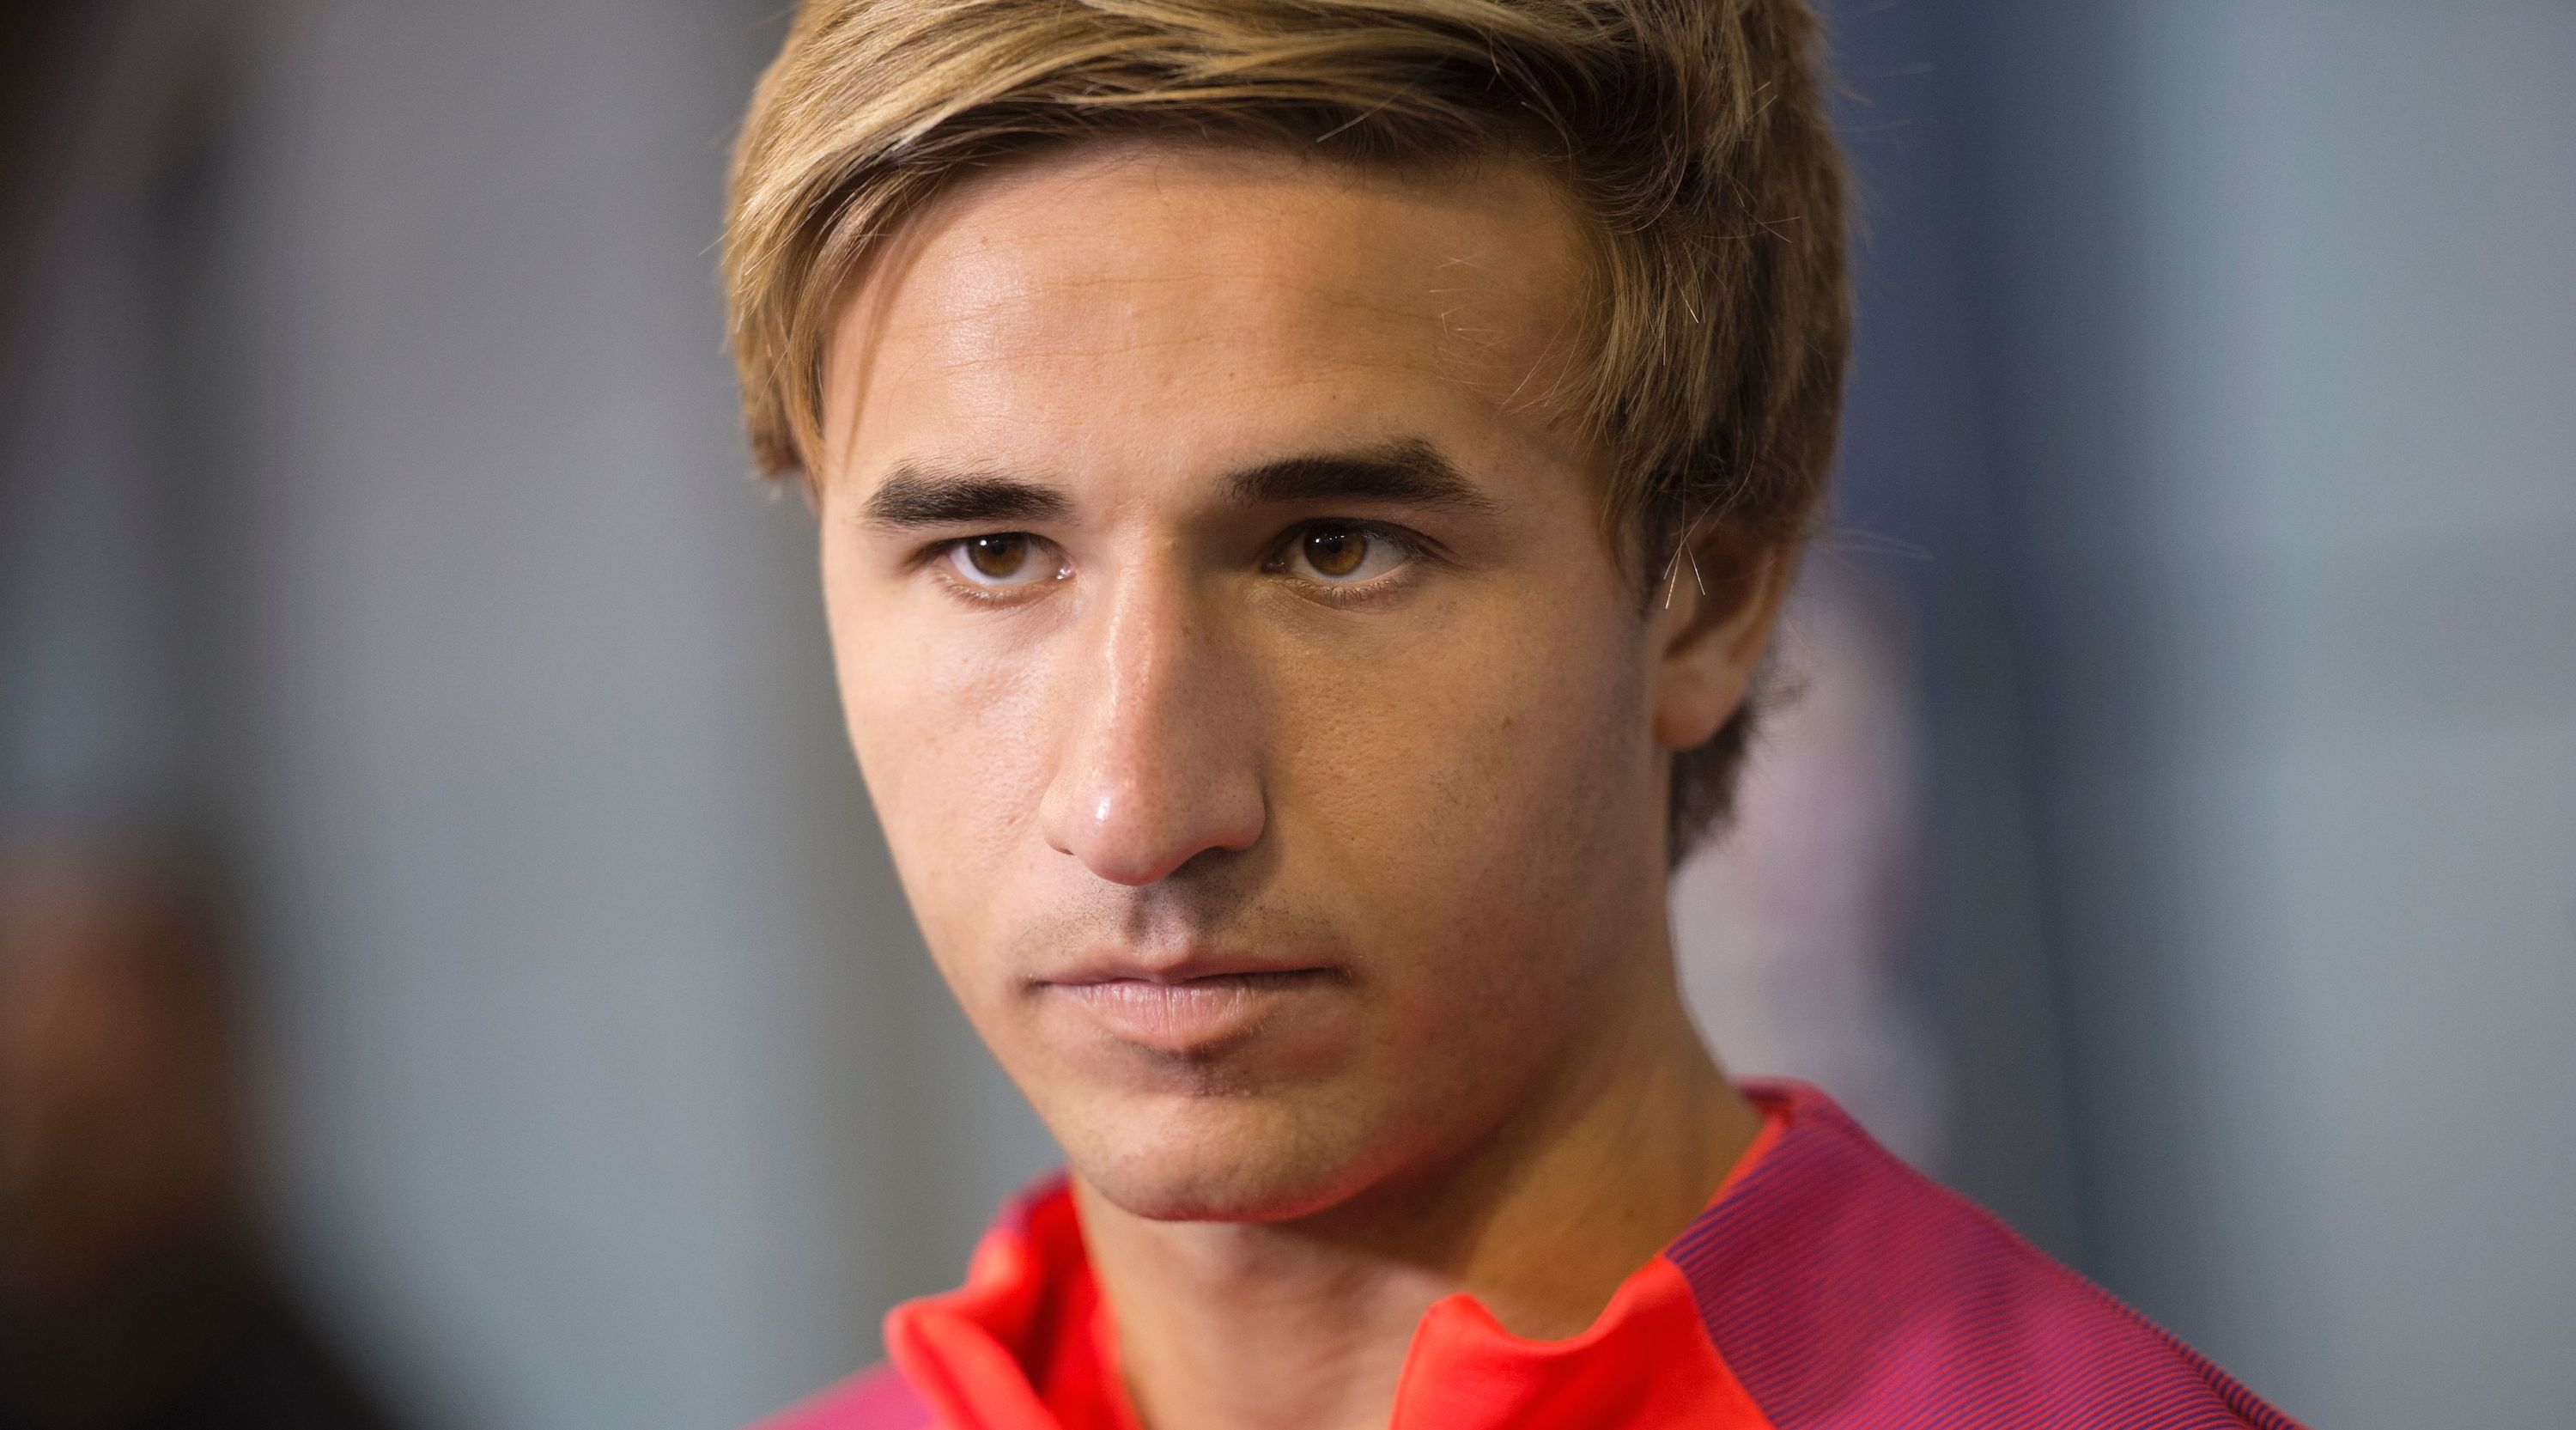 Barcelona's Spanish midfielder Sergi Samper is interviewed following a team training session at St George's Park near Burton-on-Trent, central England, on July 28, 2016.